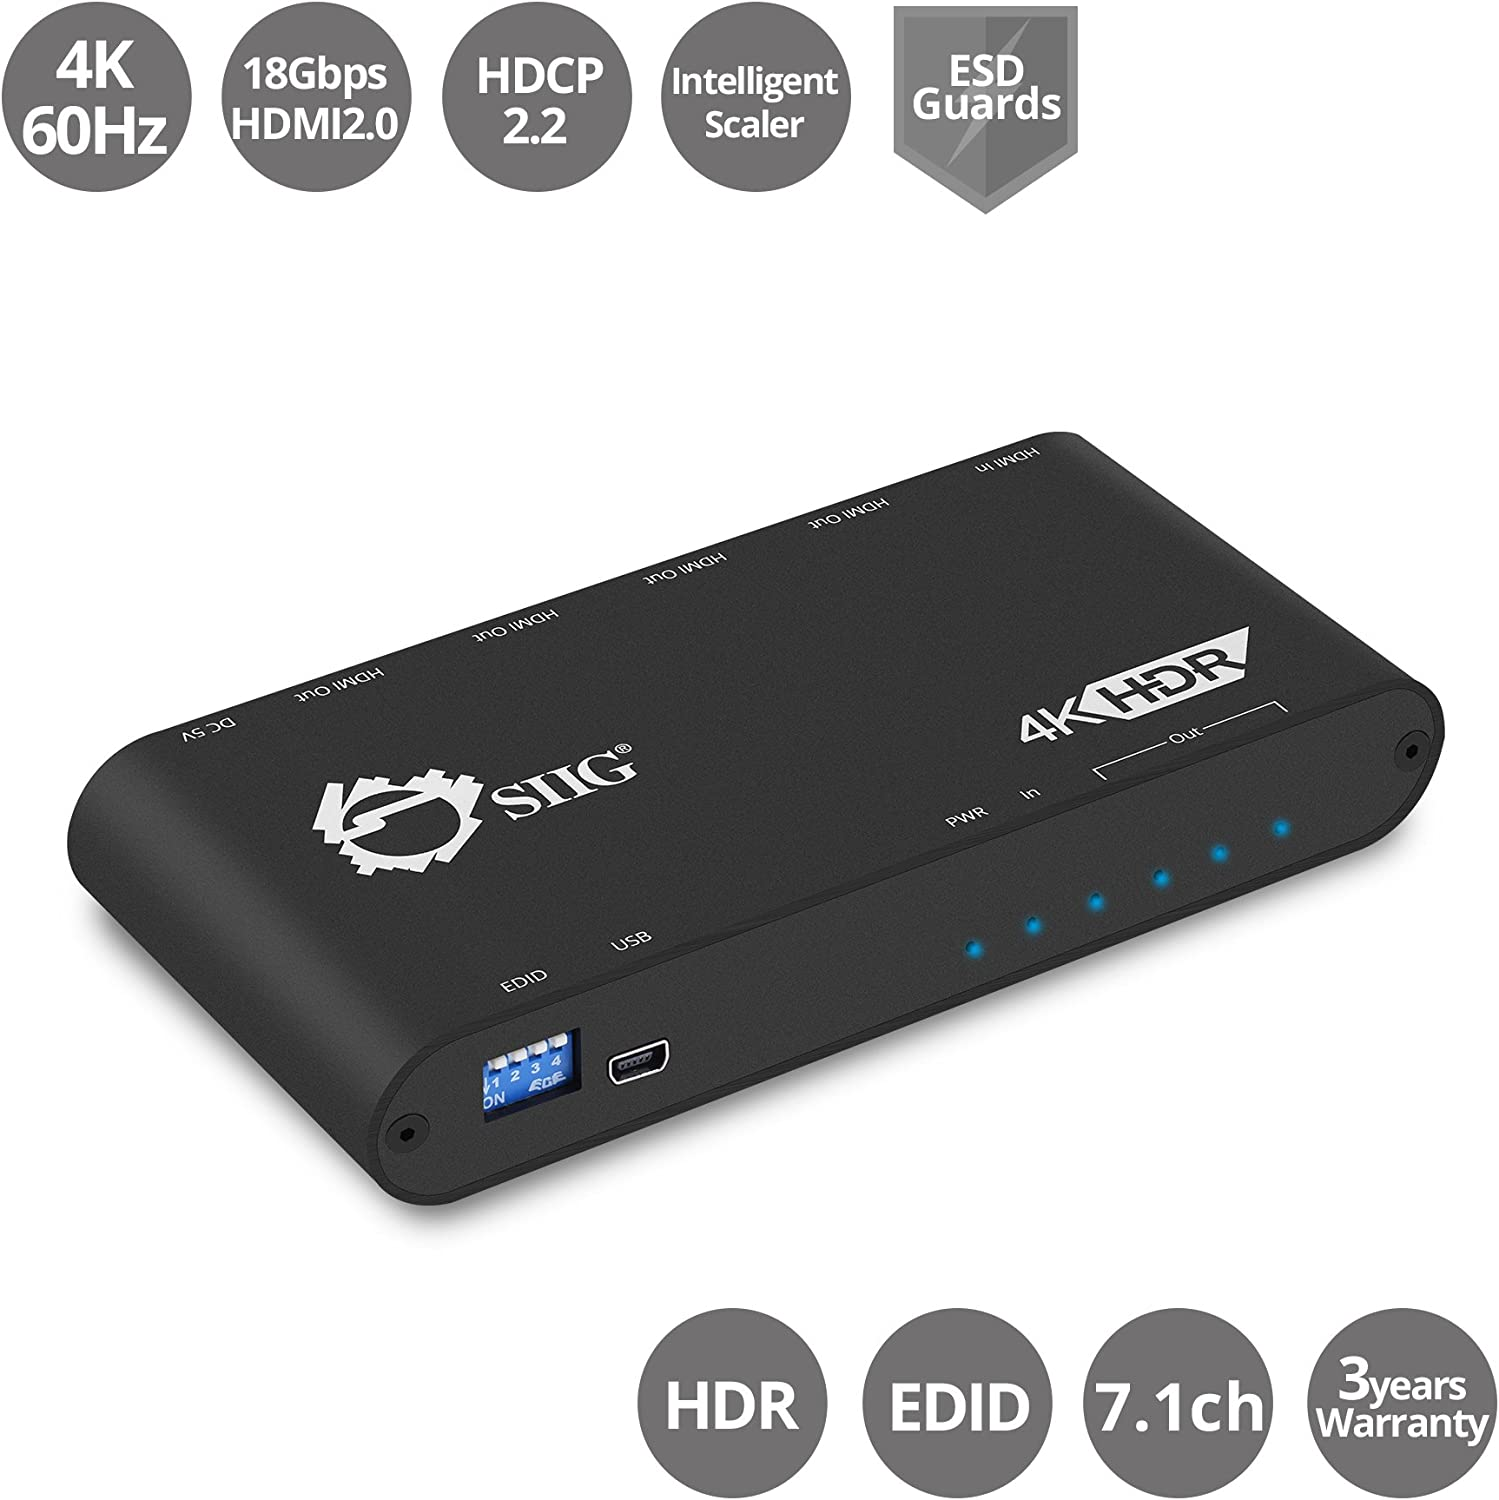 SIIG 1x4 HDMI 4K @60Hz HDR Splitter w/EDID Management | YUV 4:4:4 8-bit | YUV 4:2:0 10bit | HDMI 2.0, HDCP 2.2, 18Gbps | Auto Scaling, Low Heat, Cascadable, Firmware Upgradable | 4 Port, 1 in 4 Out